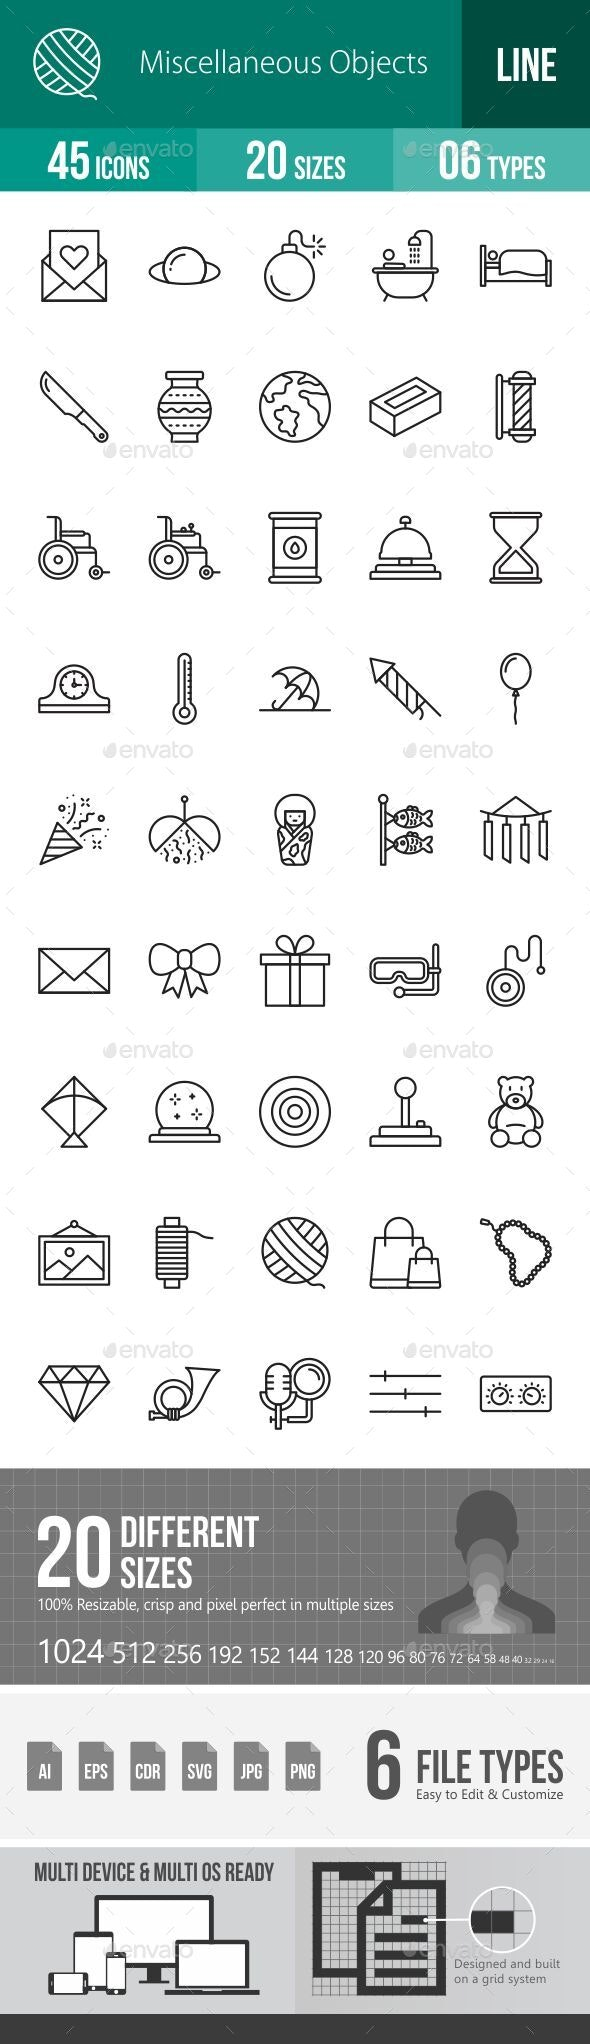 Miscellaneous Objects Line Icons - Icons